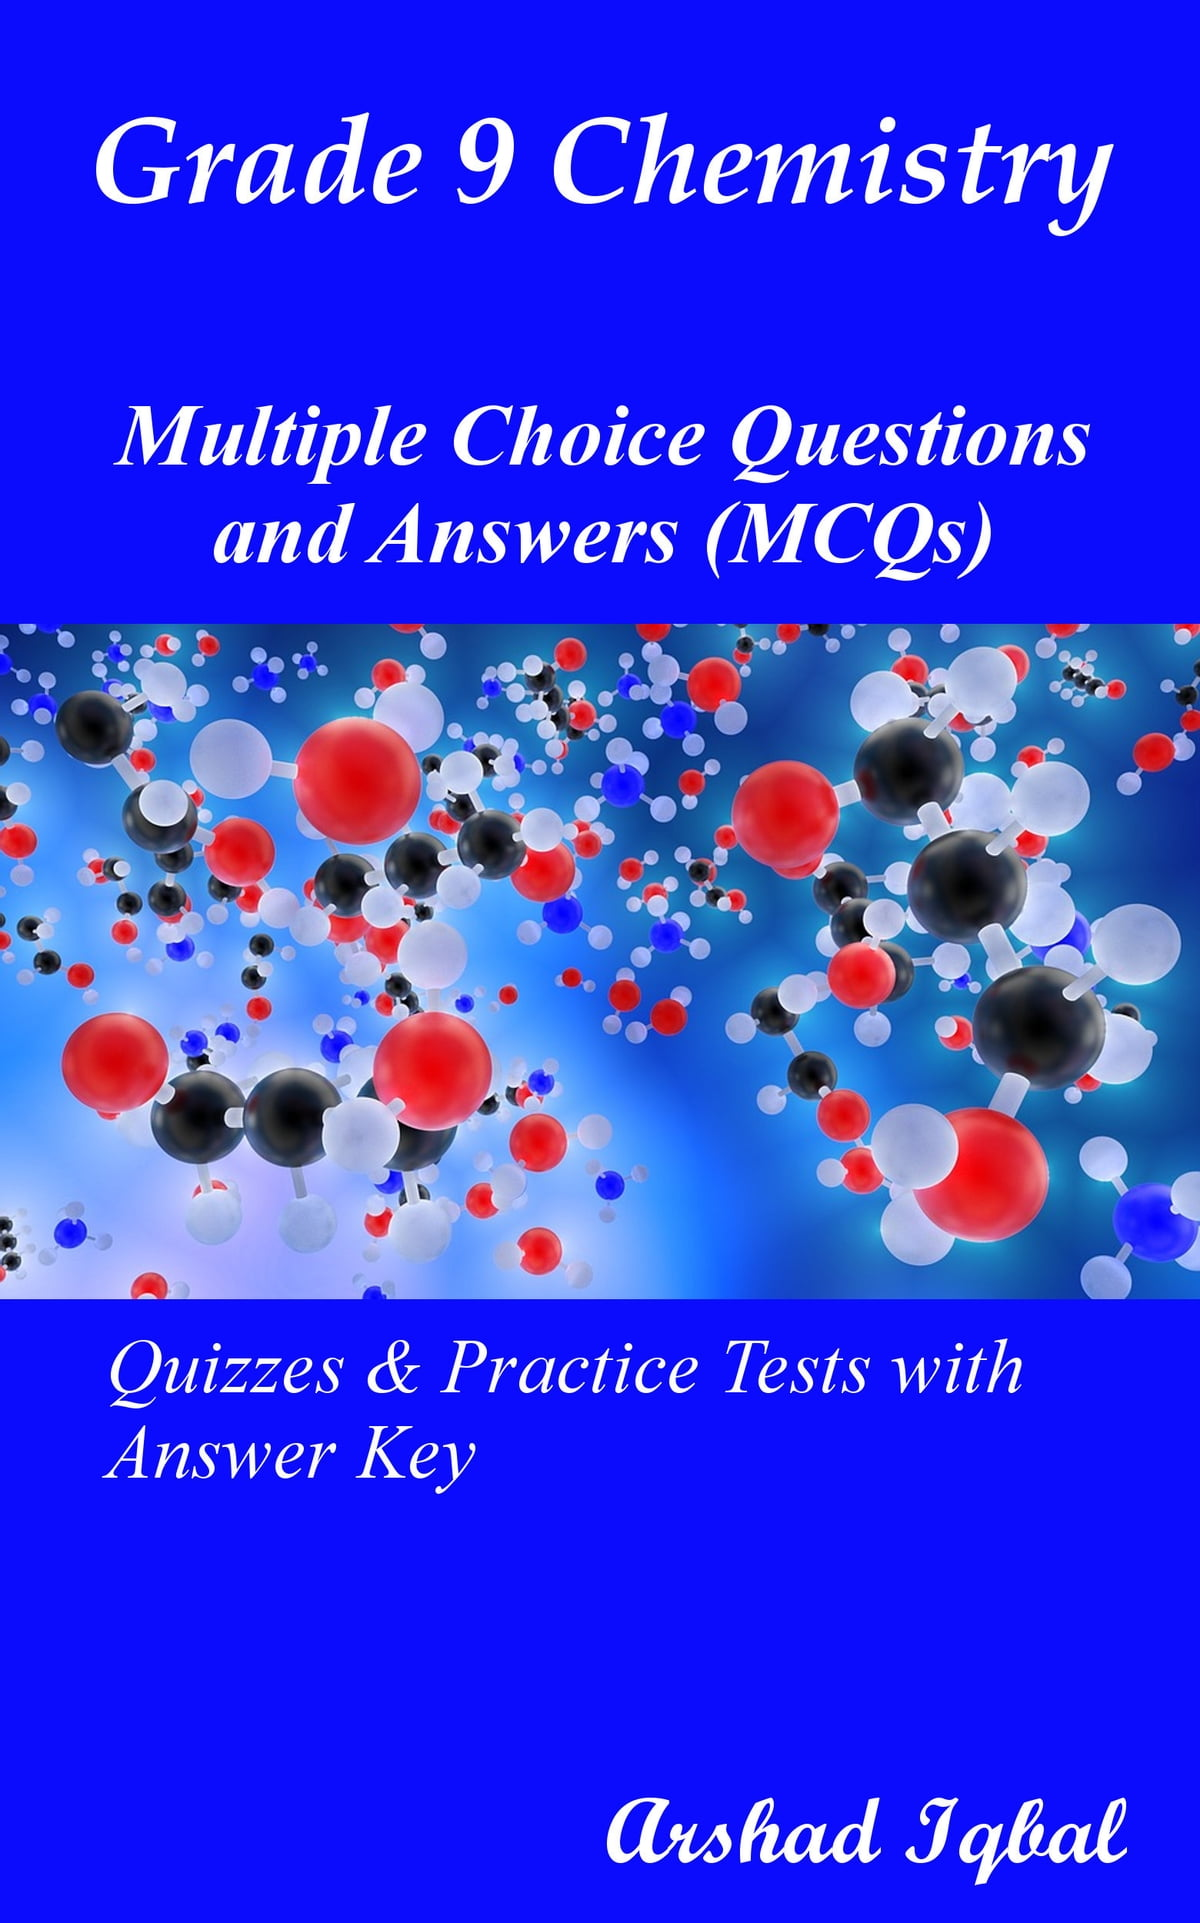 Grade 9 Chemistry Multiple Choice Questions And Answers MCQs Quizzes Practice Tests With Answer Key Ebook By Arshad Iqbal Rakuten Kobo